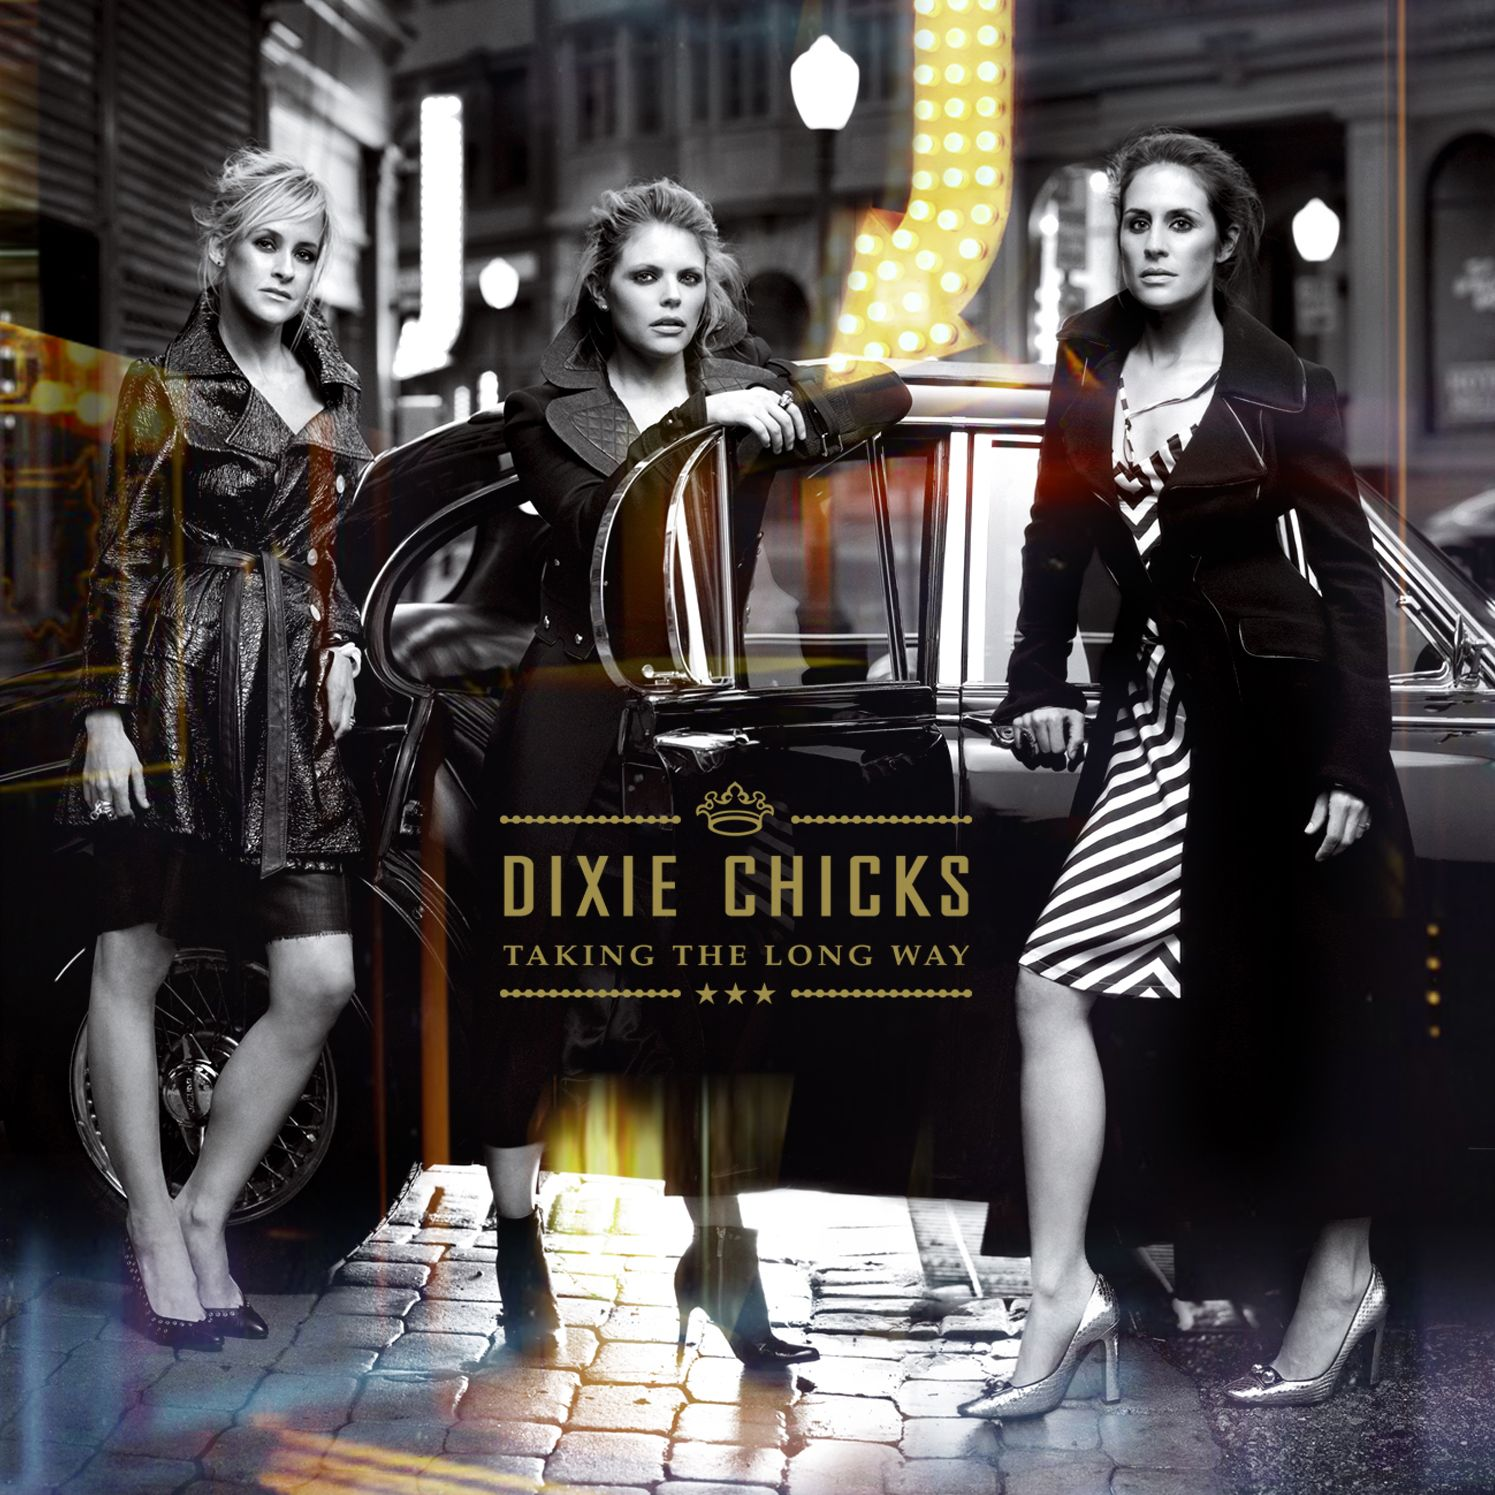 Dixie Chicks - Taking The Long Way album cover